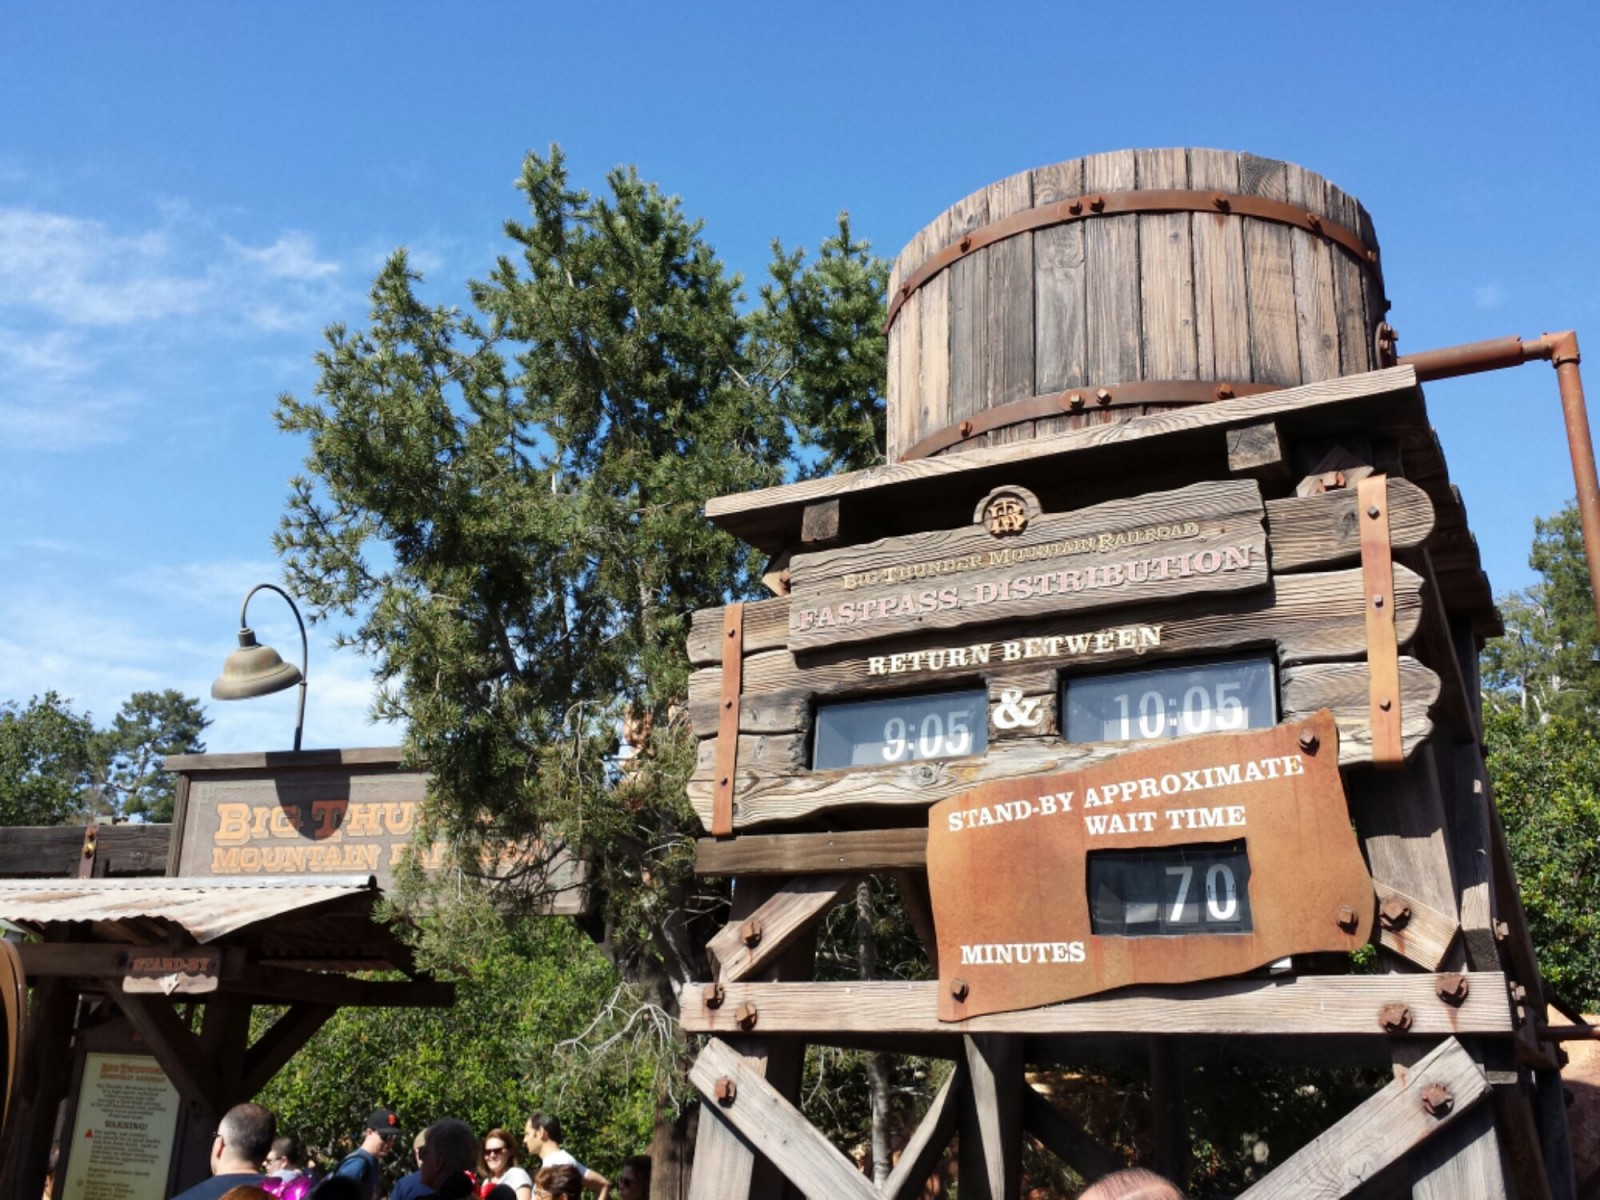 Big Thunder has returned.  A 70min wait and Fastpass return on 6 hours